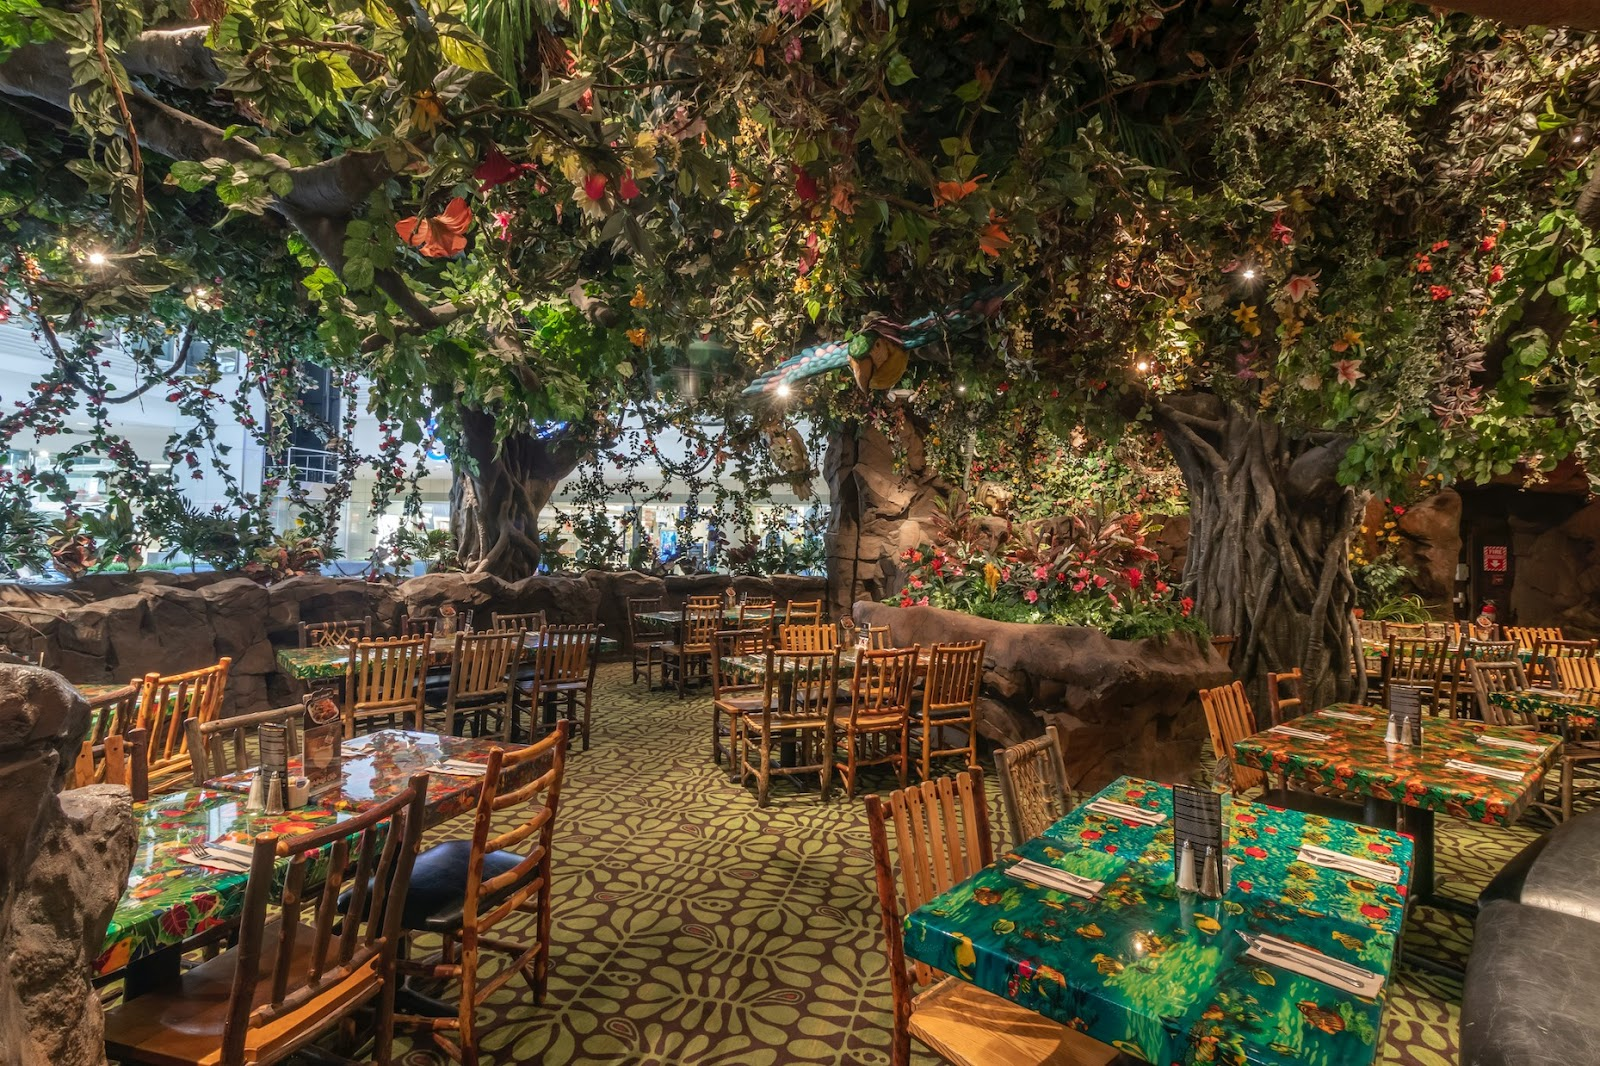 A wide photo of the Rainforest Cafe dining area. There are several large tables, surrounded by lush trees that have fake butterflies and birds hanging from their branches.